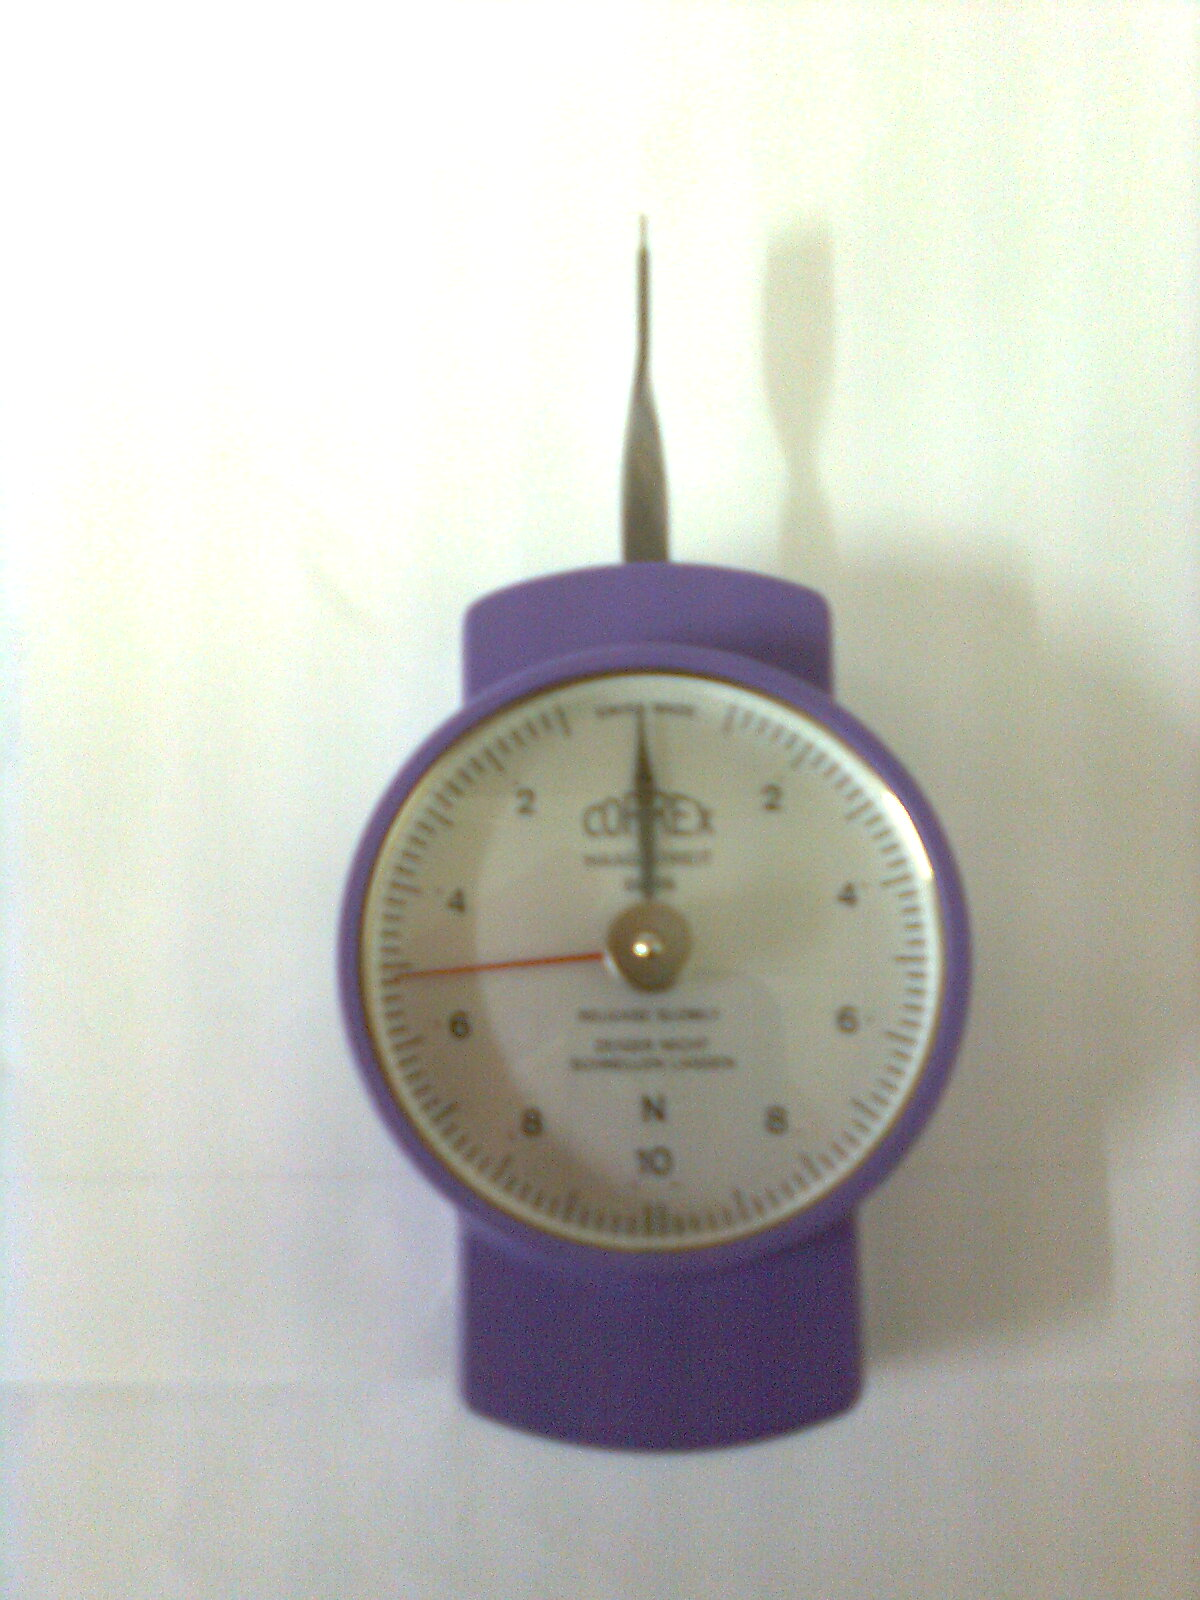 10 N FM : Tension Gauge Image